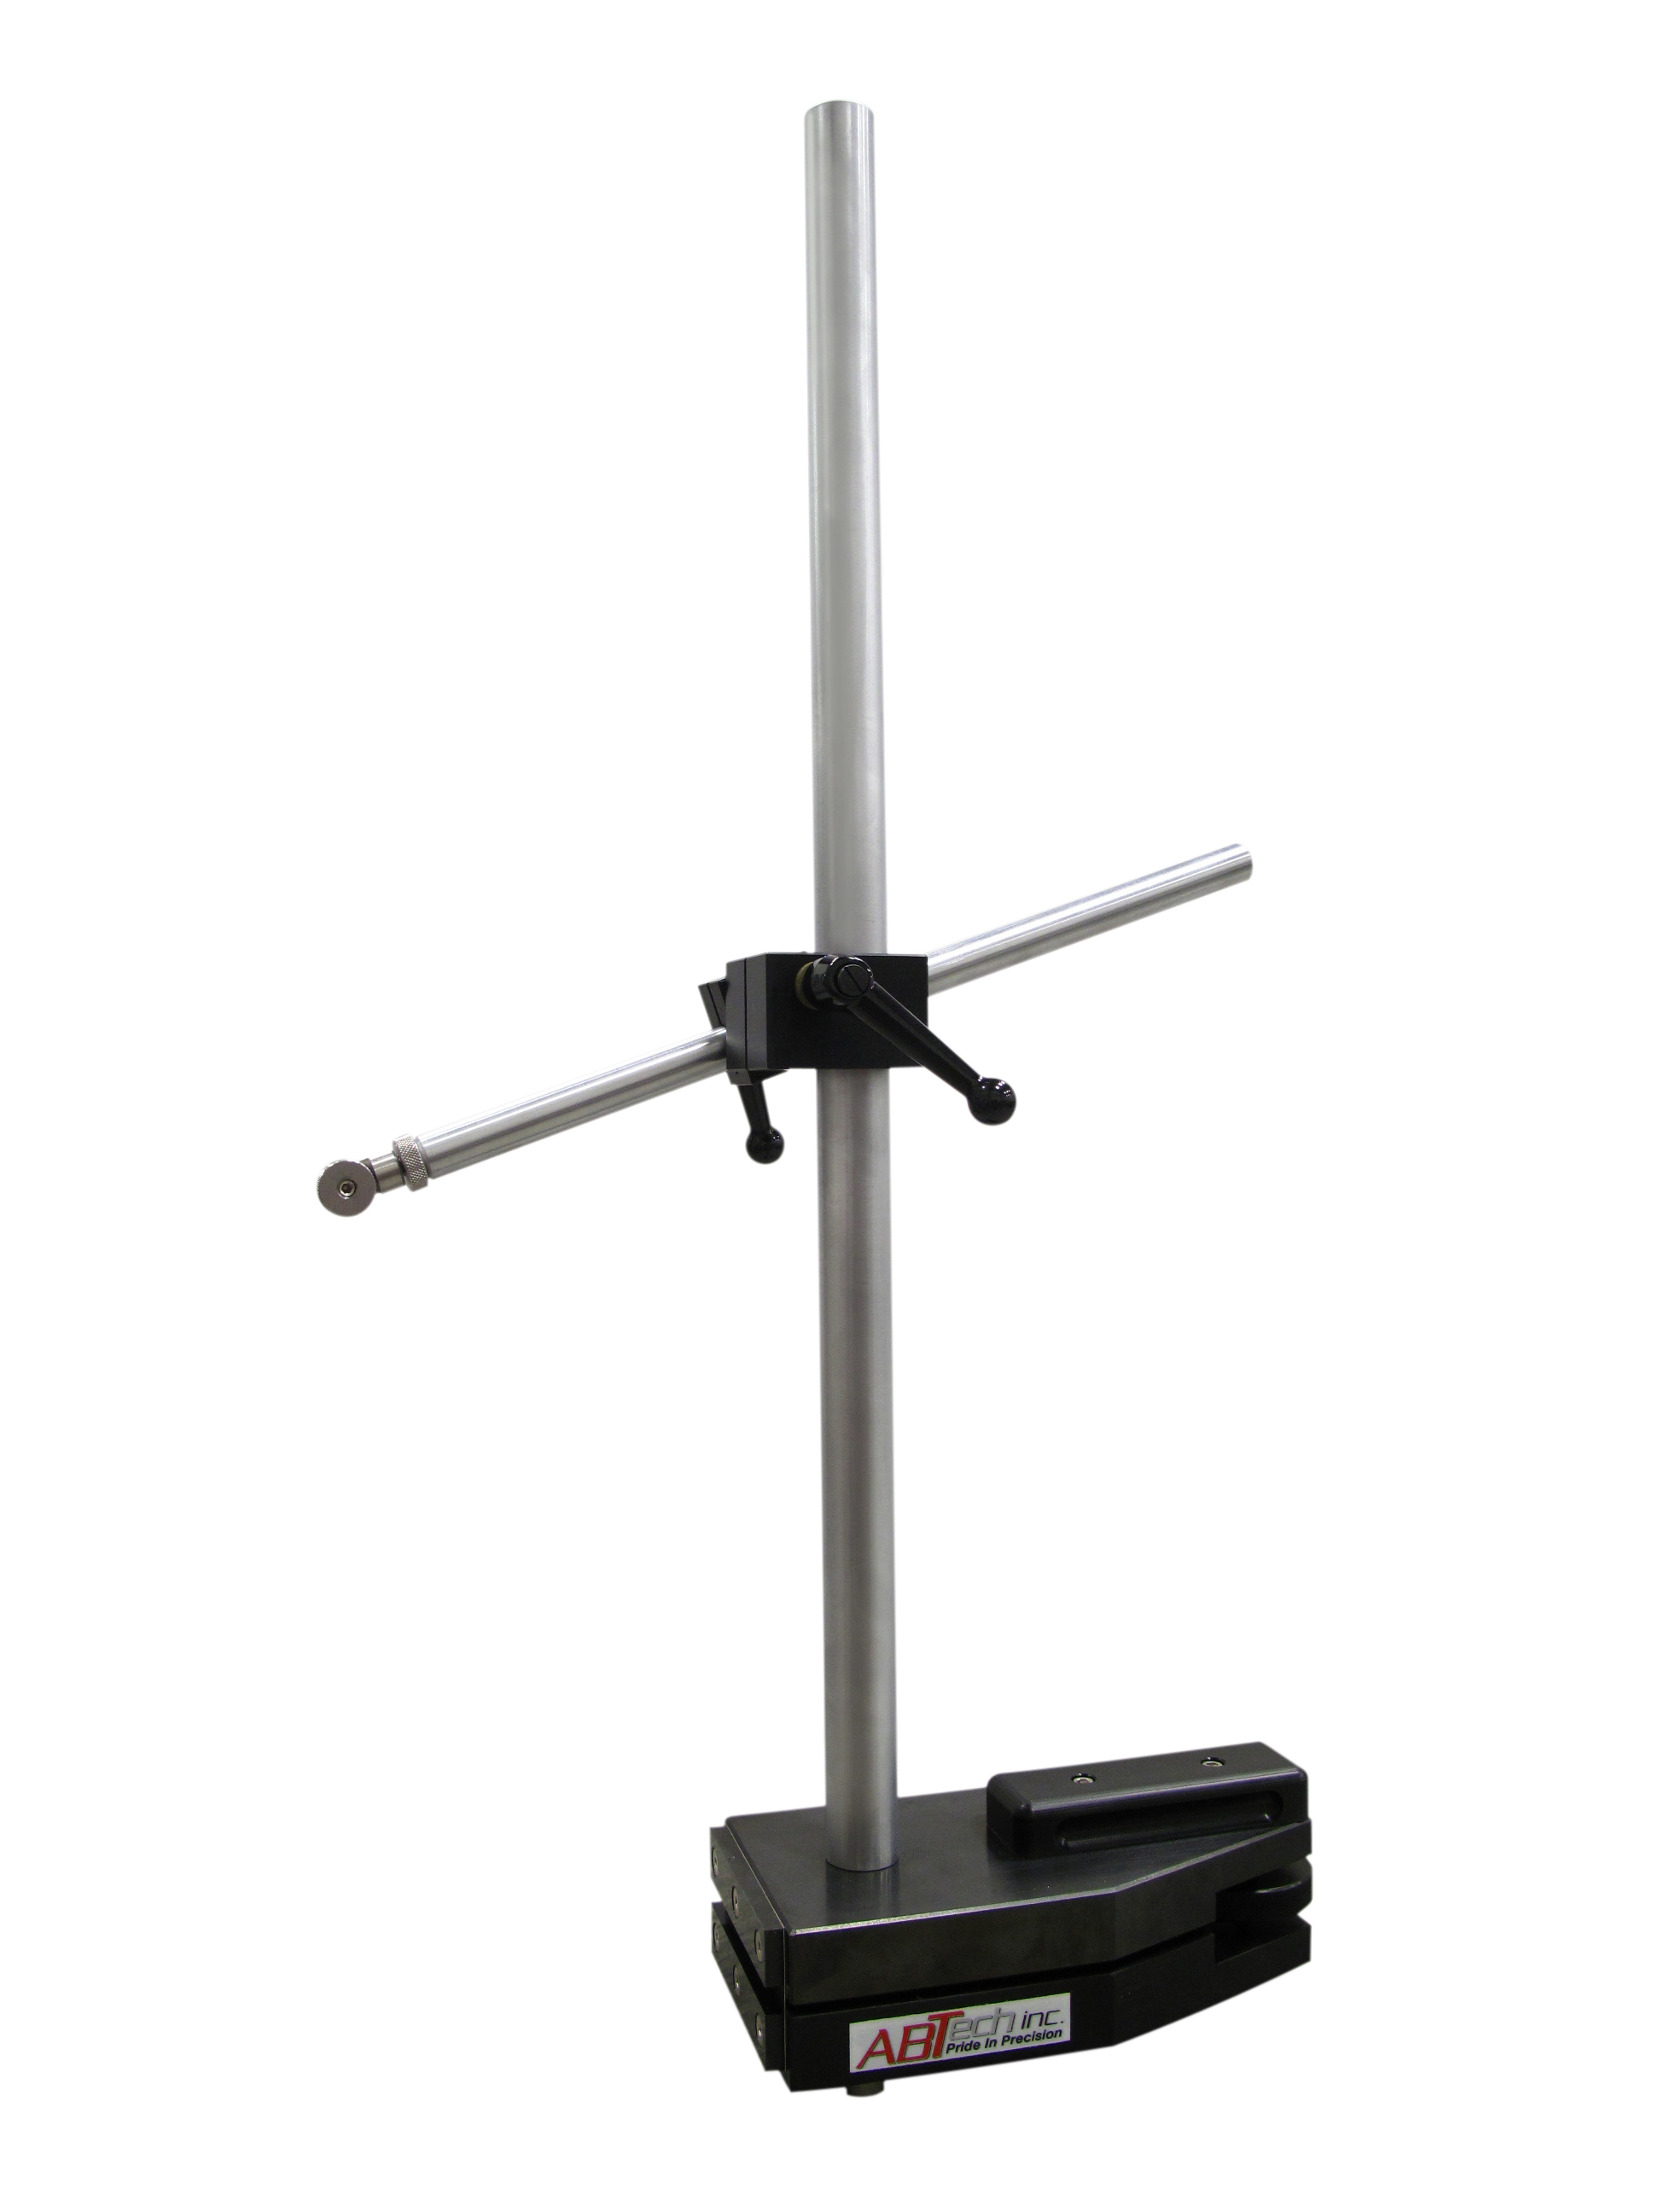 Tool room style portable gage stand